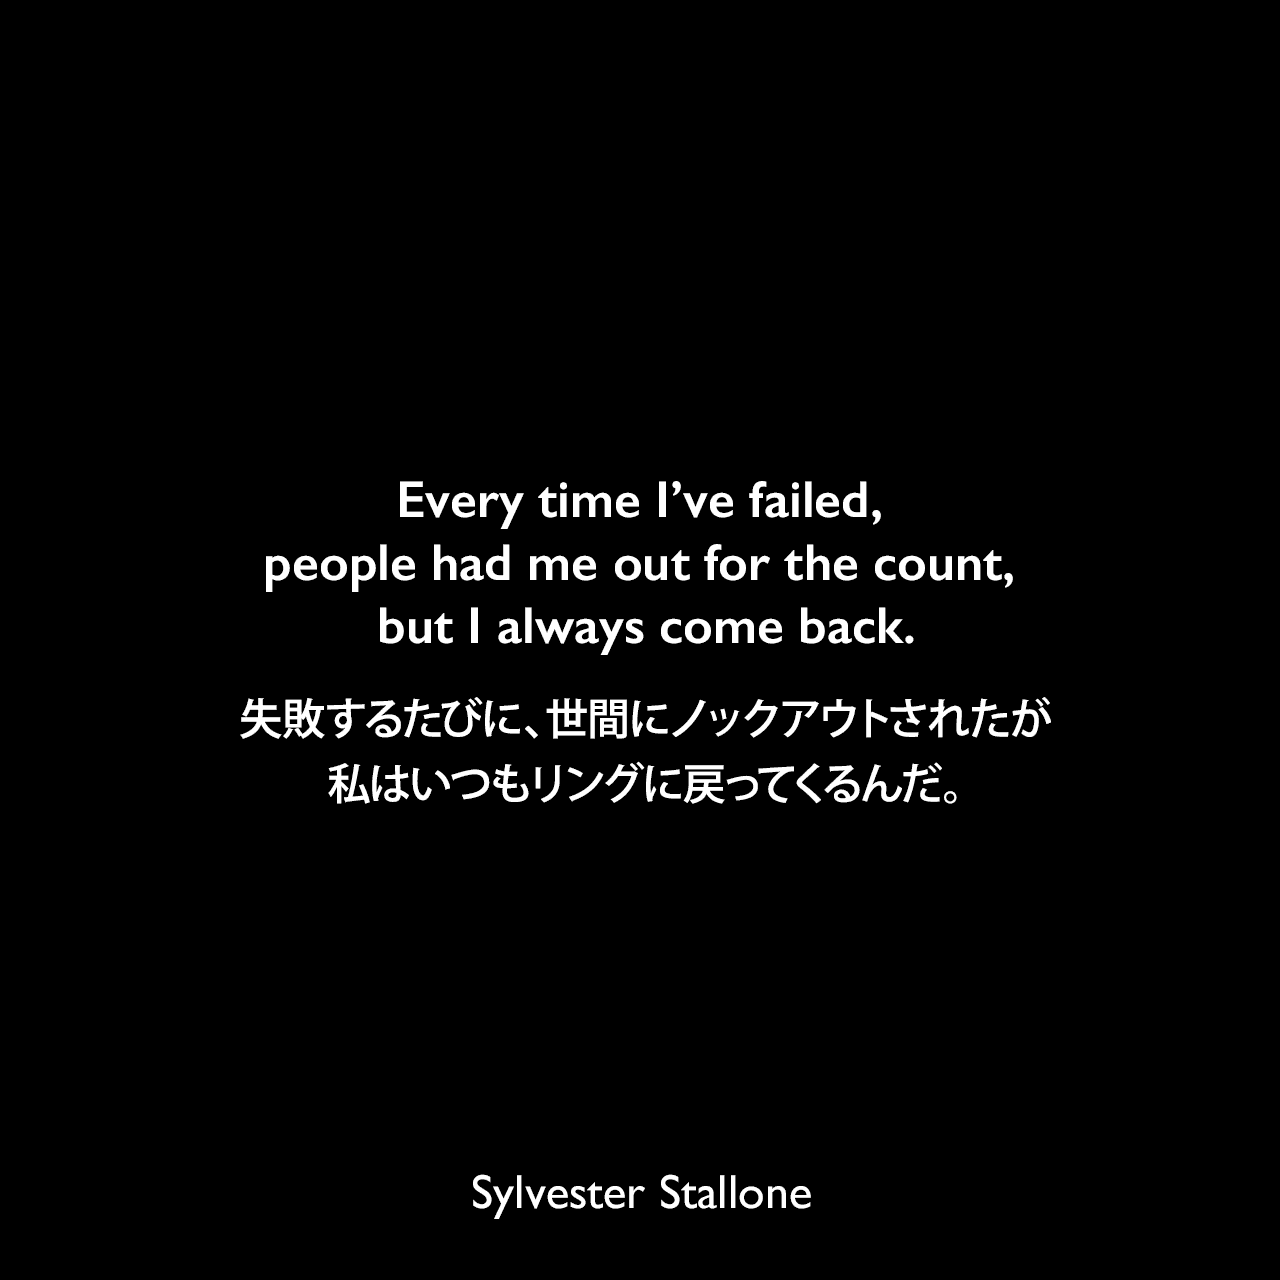 Every time I've failed, people had me out for the count, but I always come back.失敗するたびに、世間にノックアウトされたが、私はいつもリングに戻ってくるんだ。